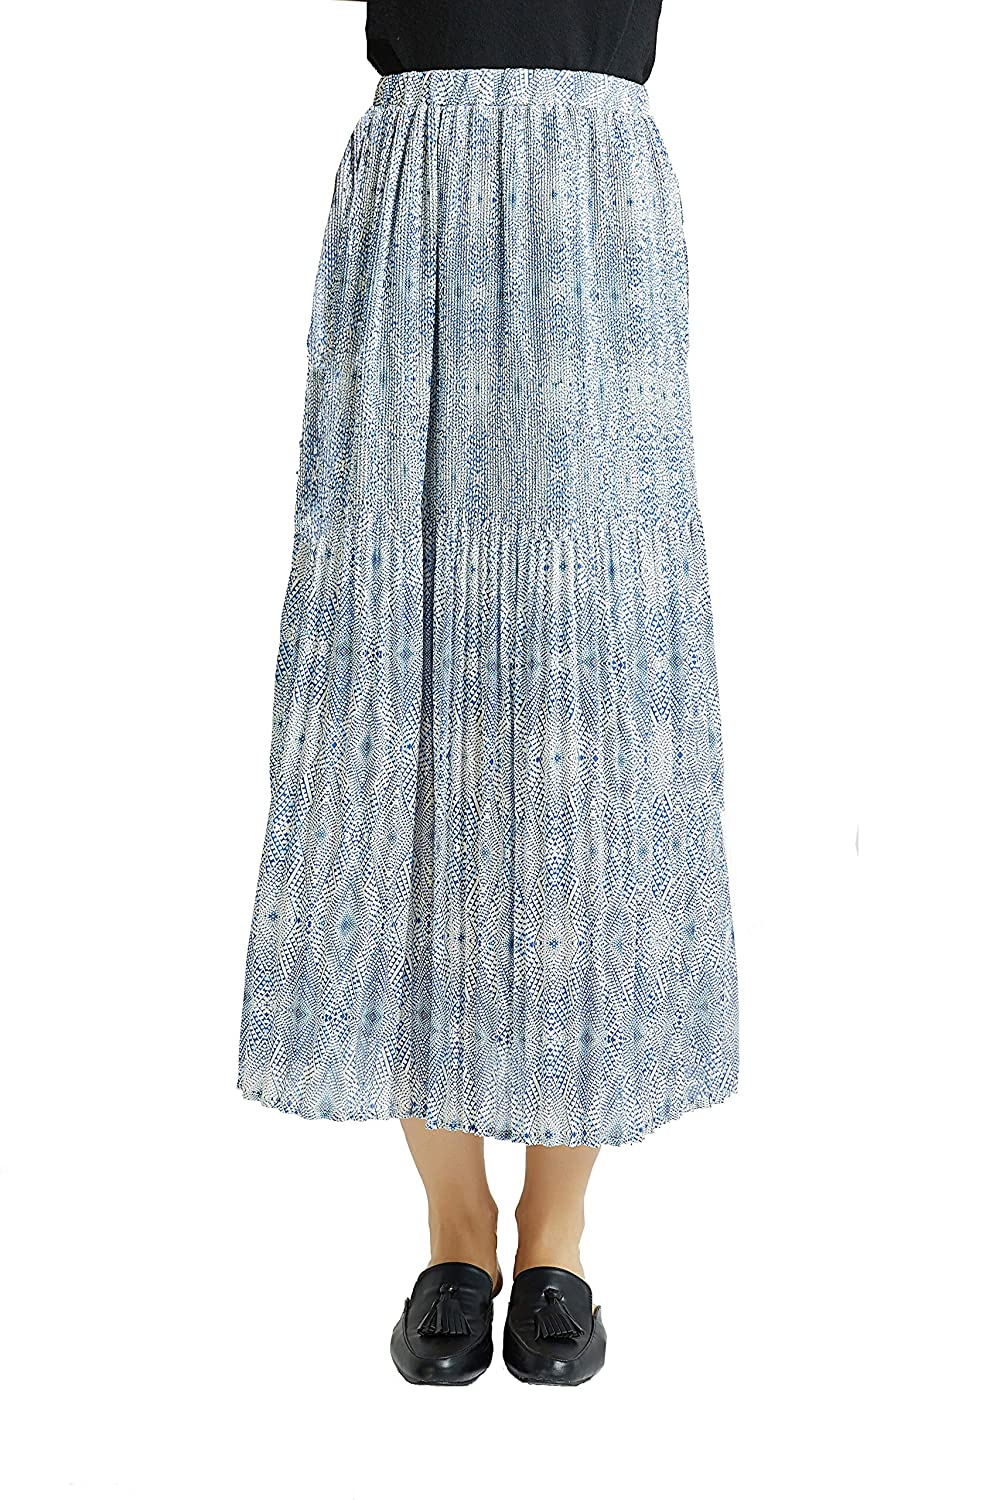 6b3b76f93d Popular Maxi Skirt with Fancy Floral Print,Pleated on half, With Chiffon  lining,No seeing through . Elastic waistband gives you easy-to-wear comfort  ...